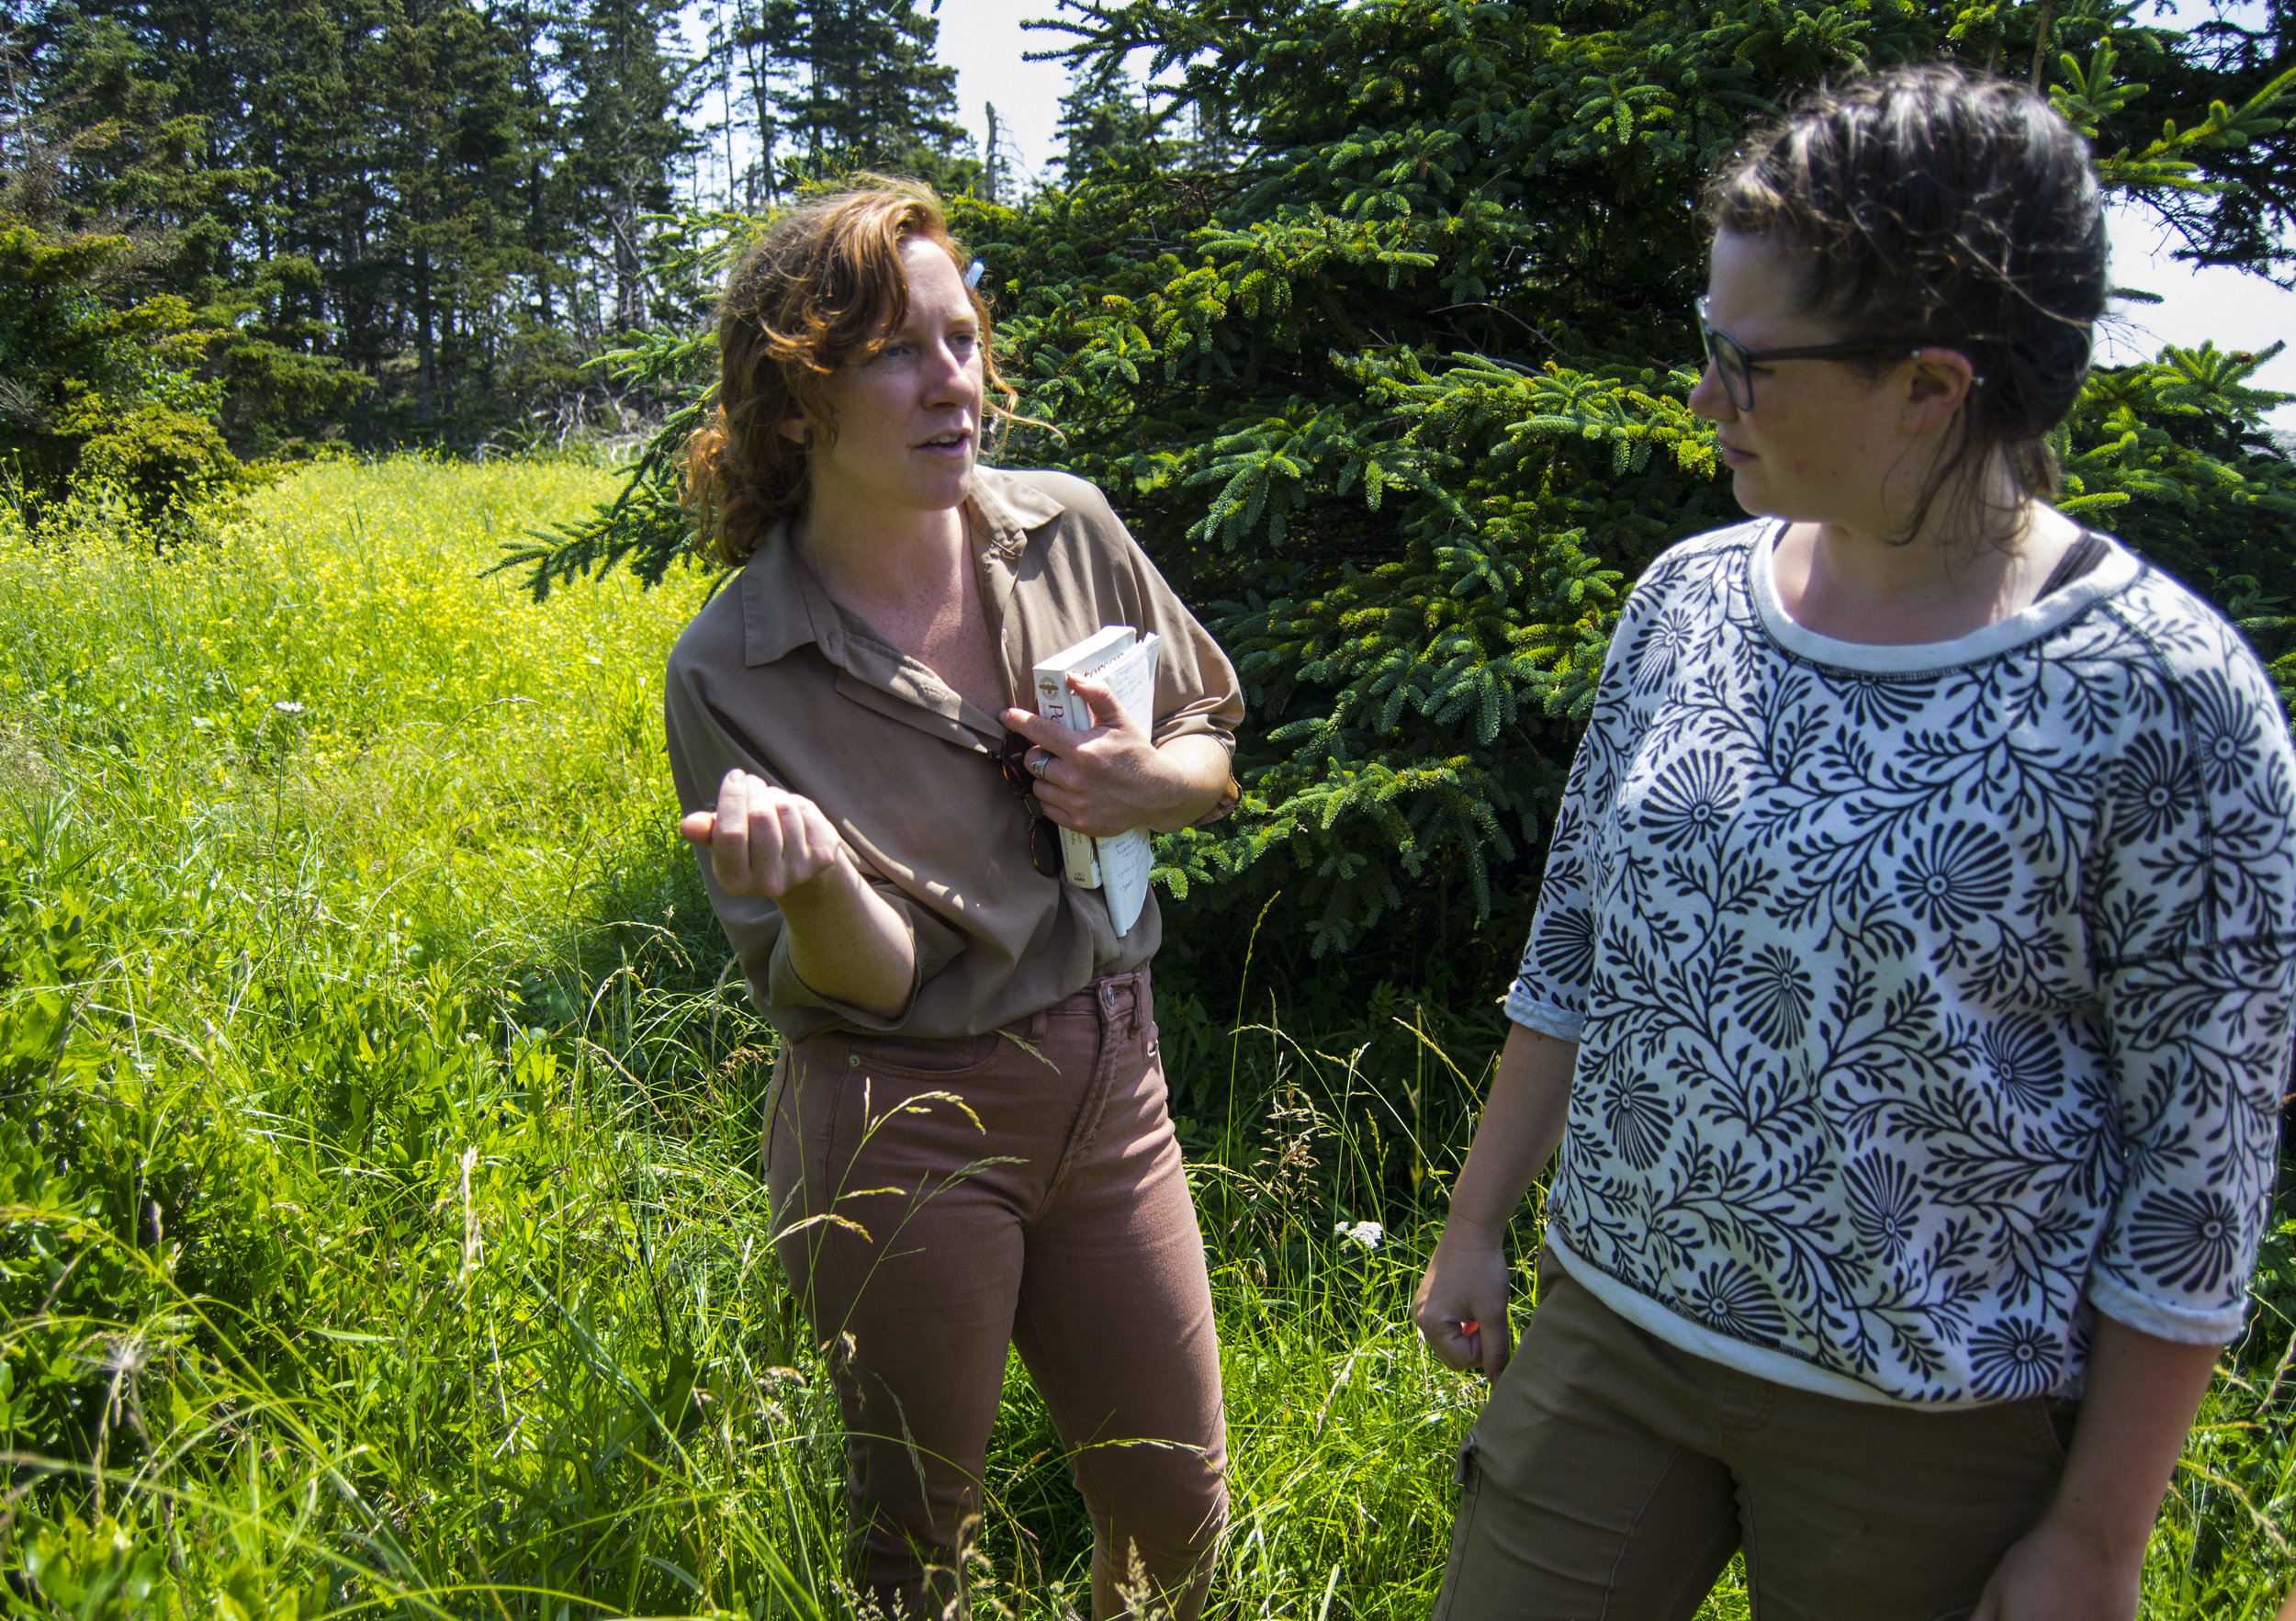 Mackenzie (right) learning about the medicinal plants found in the HLC forest from herbalist-in-training, Erica Fraser (left).